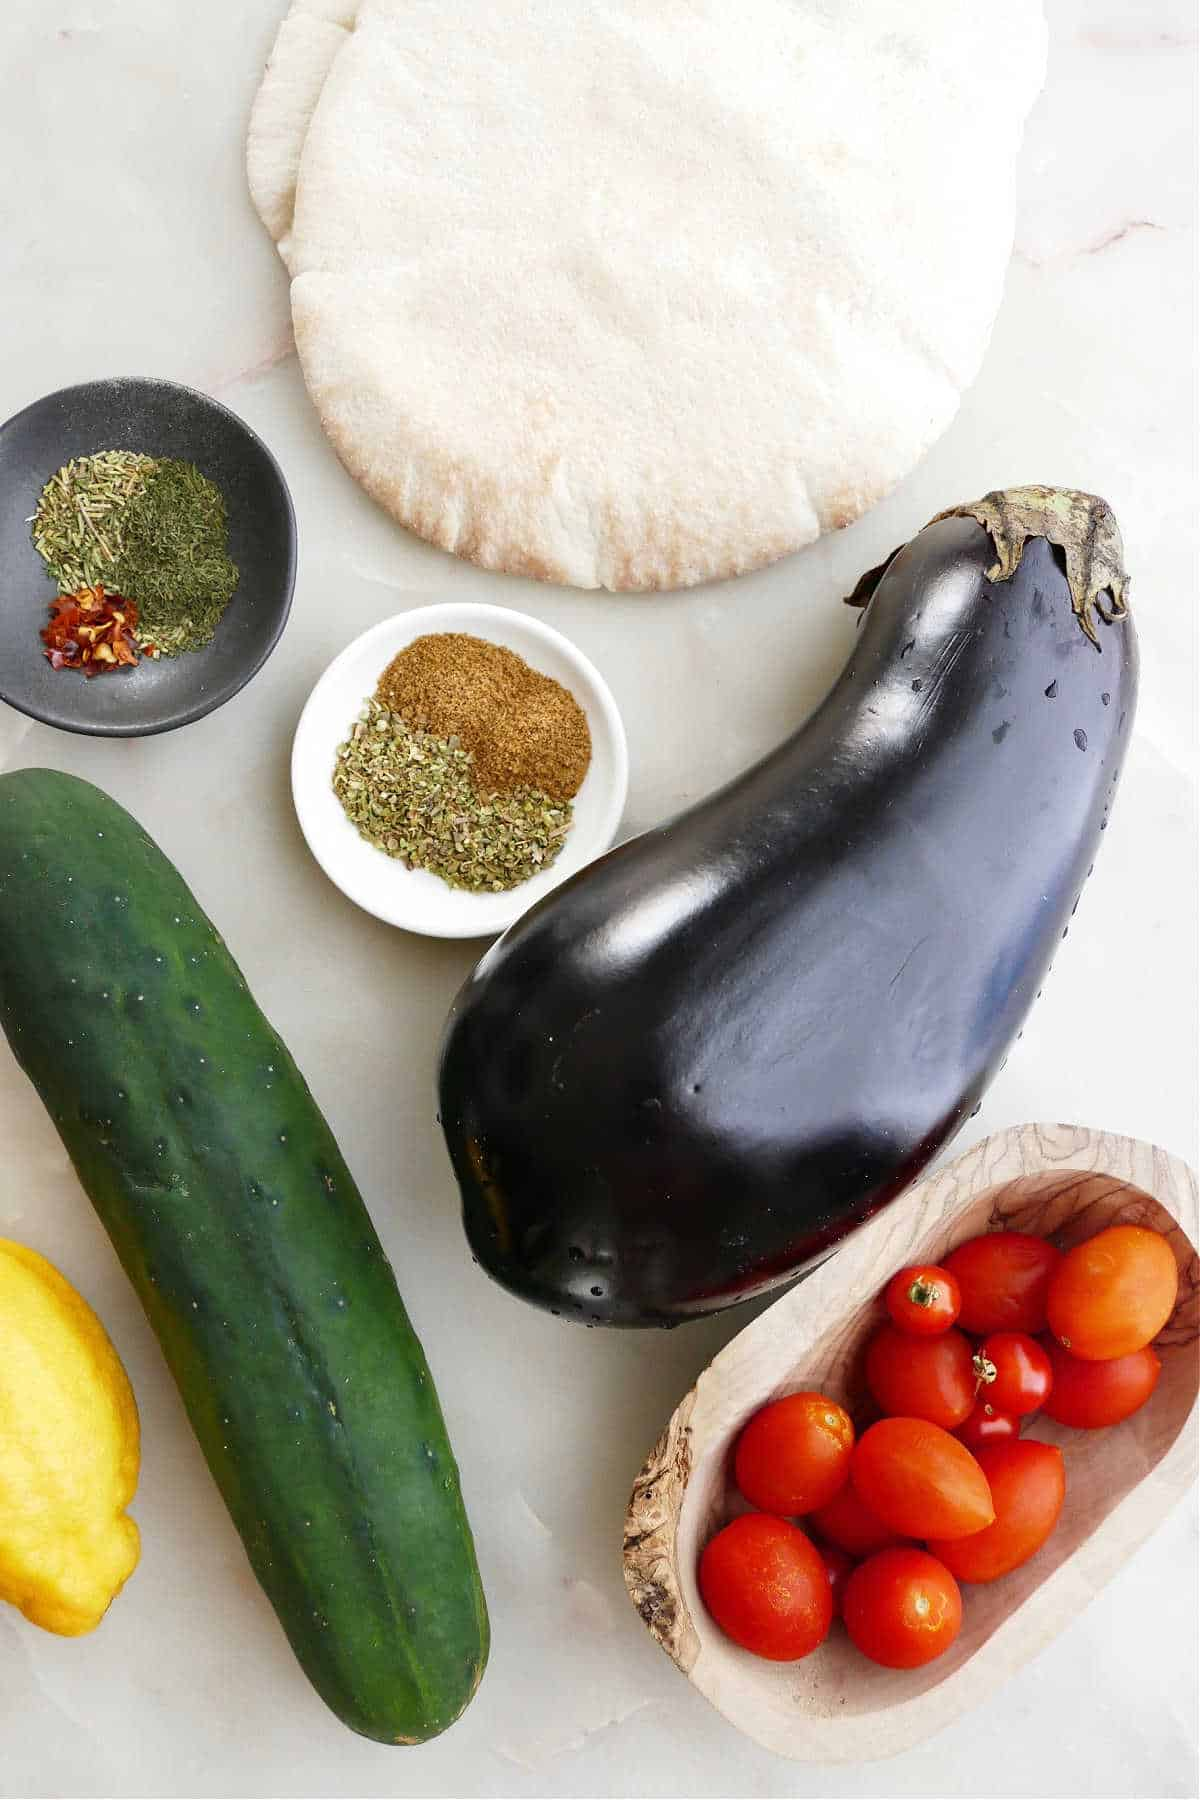 ingredients for eggplant gyro sandwiches spread out next to each other on a counter